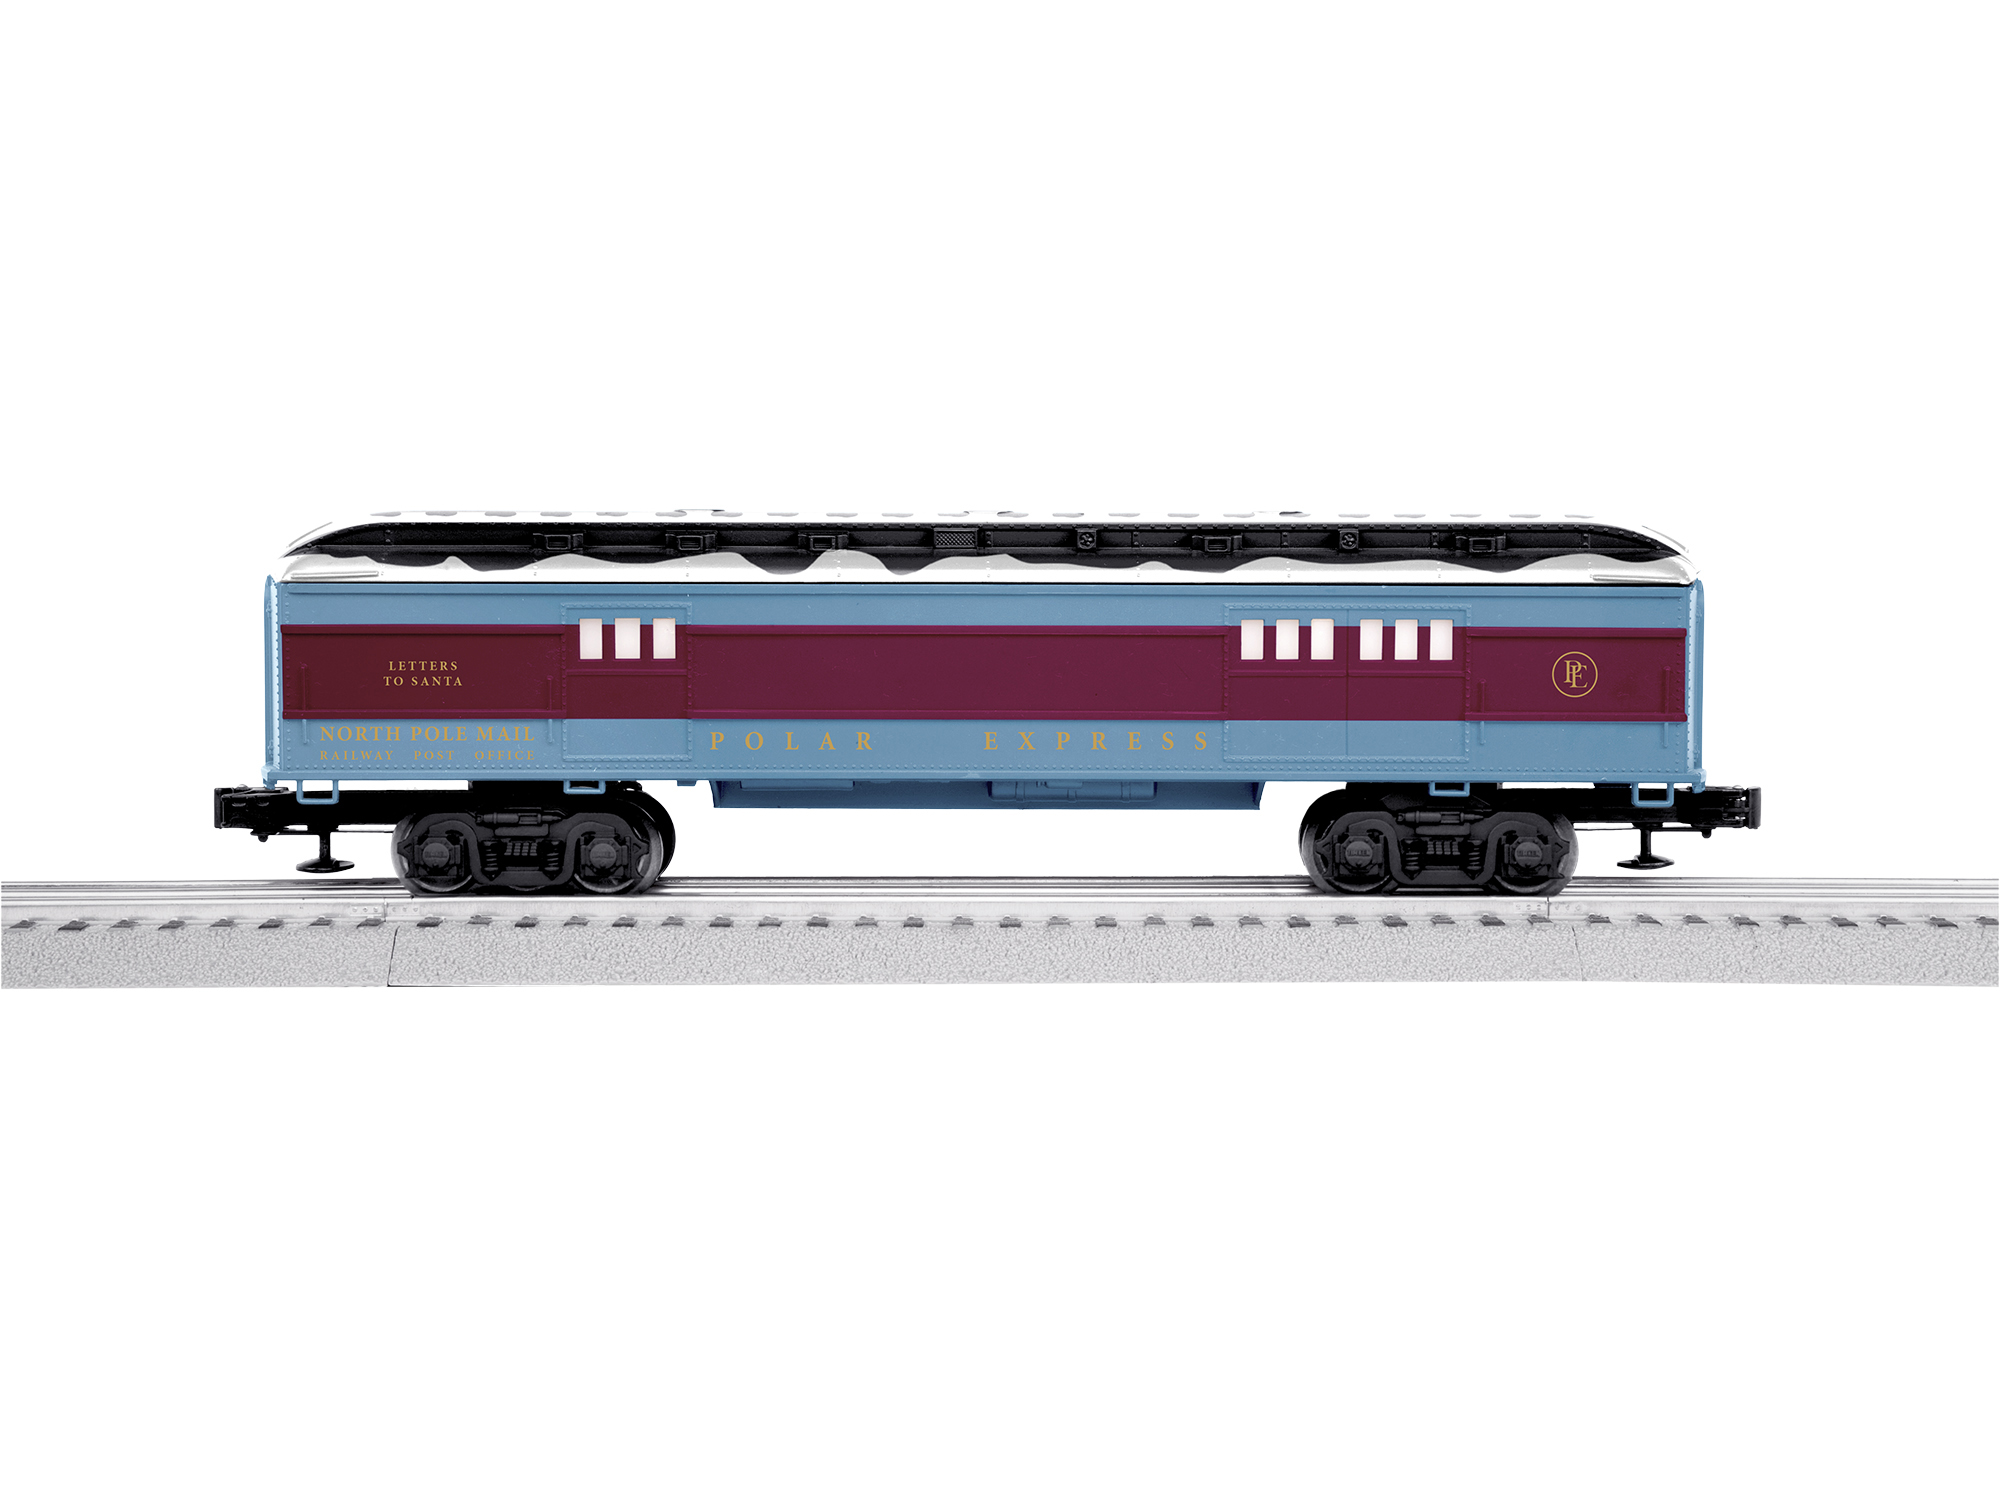 LNL684601 Lionel O-27 Mail Car, The Polar Express/Letters to Santa